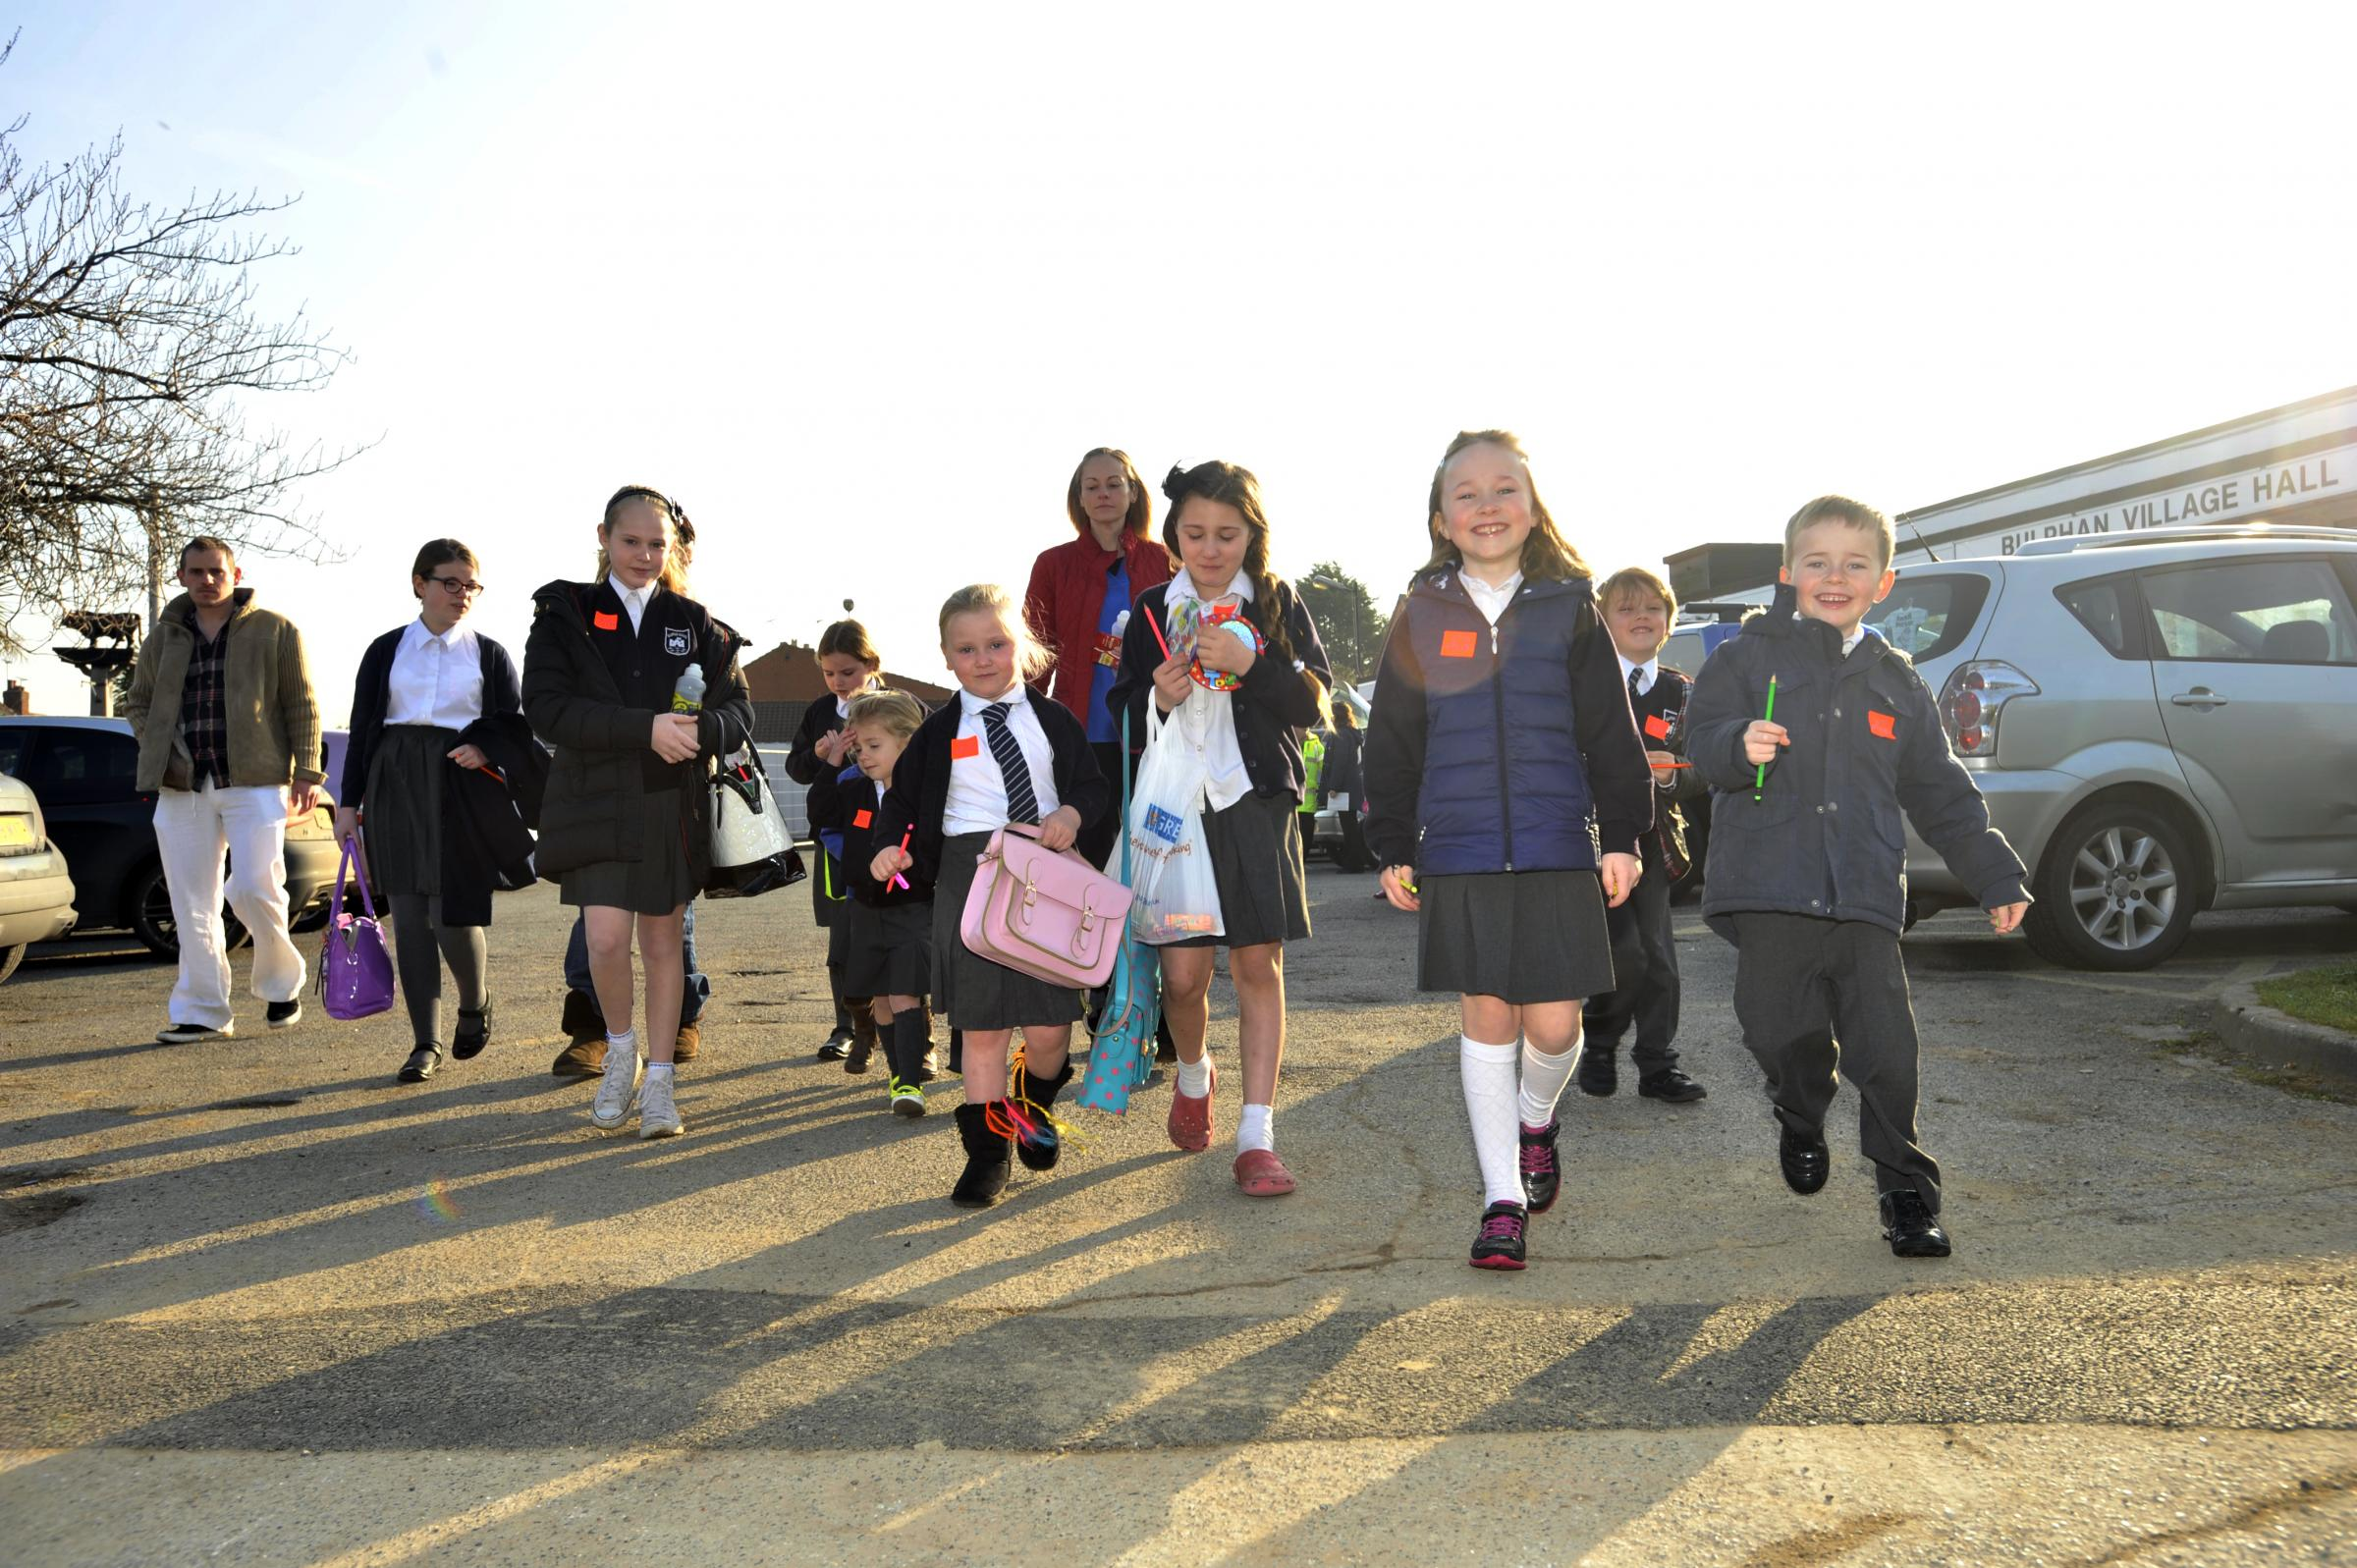 Bulphan Primary School pupils walk to school after their parents have parked up at the village hall down the road